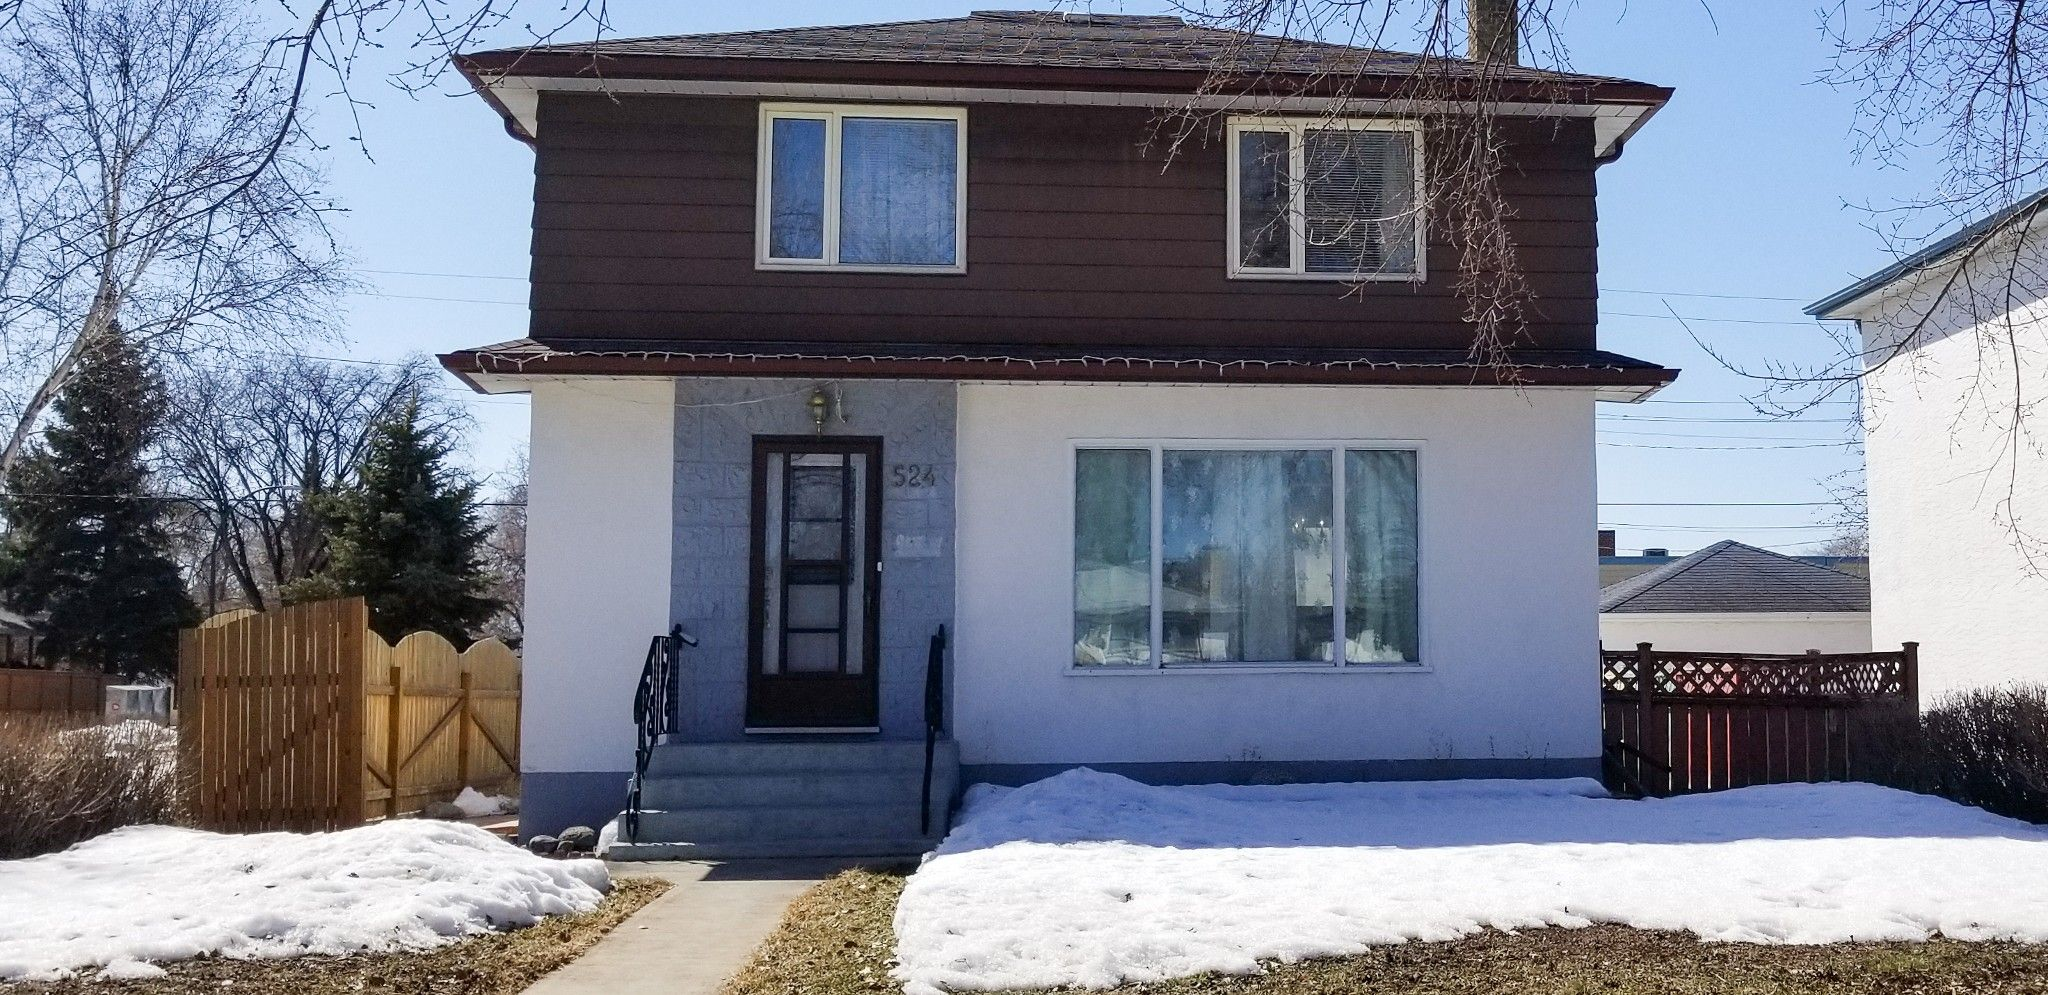 Main Photo: 524 Semple Avenue in Winnipeg: Single Family Attached for sale (4D)  : MLS®# 1906918